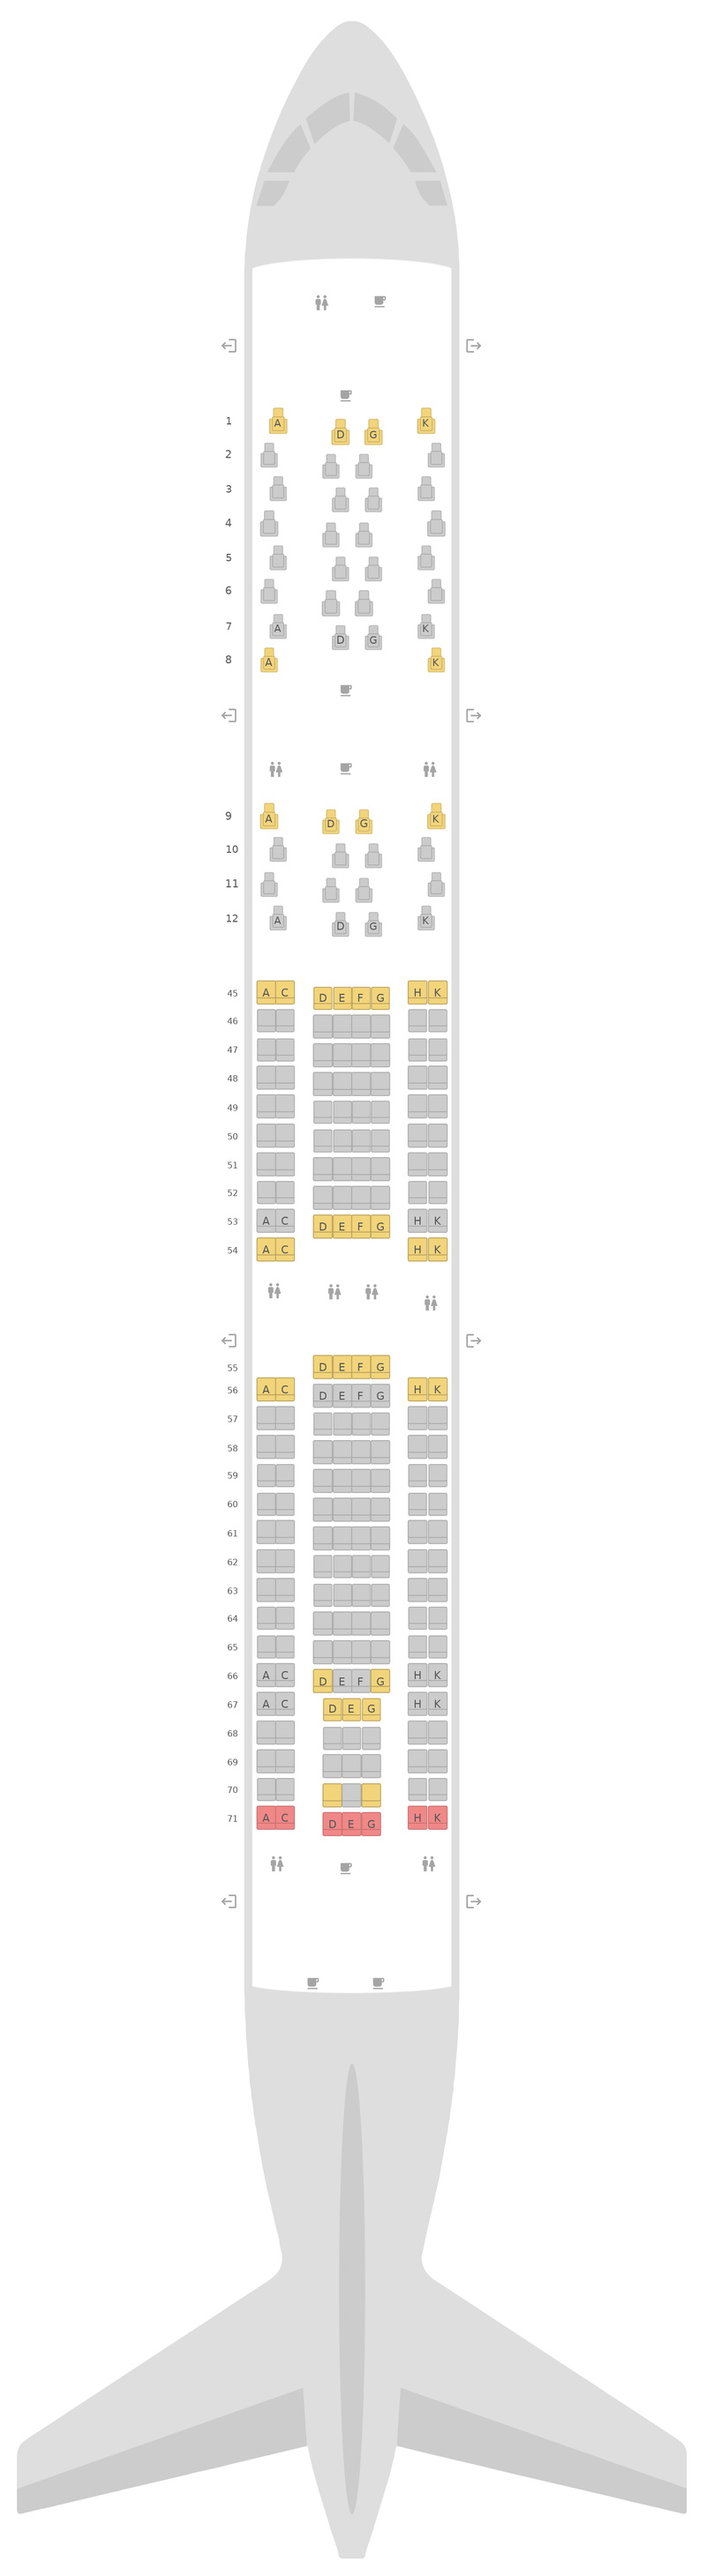 Seat Map South African Airways Airbus A330-300 (333)